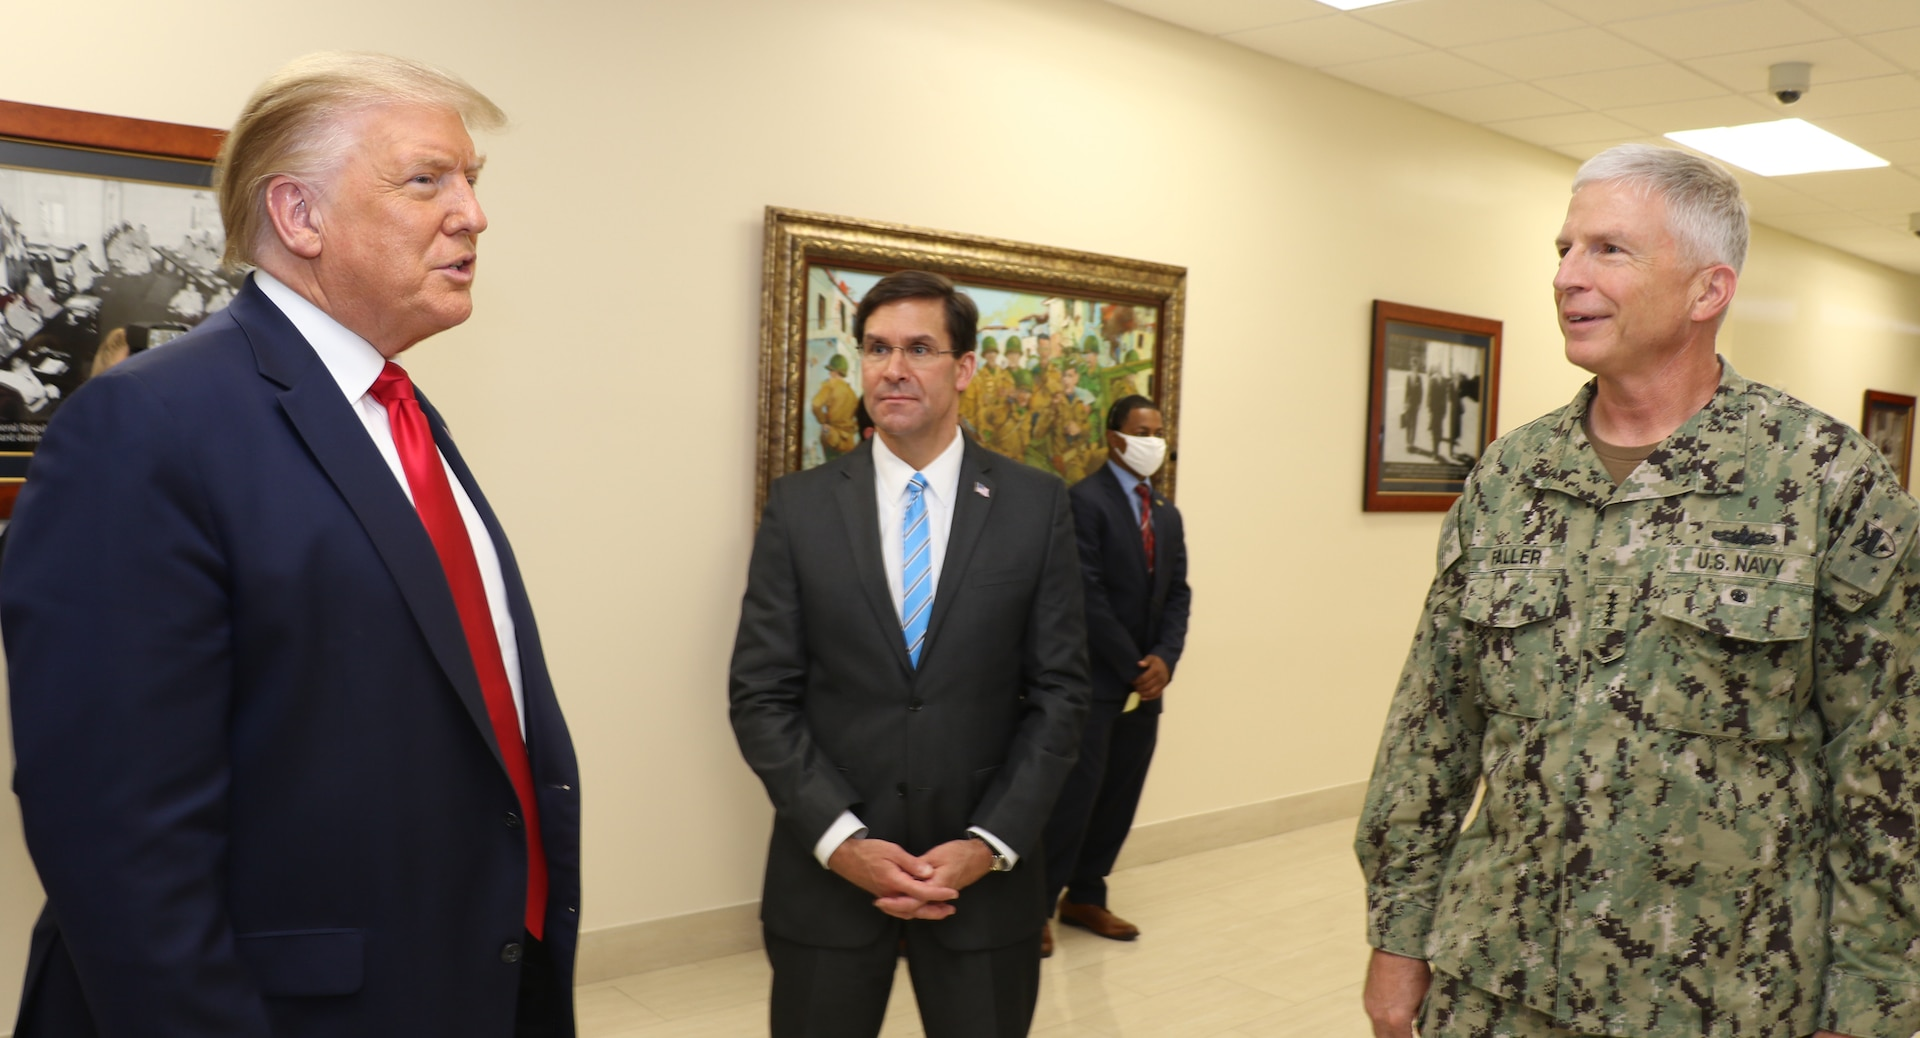 President Donald J. Trump talks with Defense Secretary Dr. Mark T. Esper and Navy Adm. Craig Faller, commander of U.S. Southern Command, at SOUTHCOM headquarters in Doral, Florida.